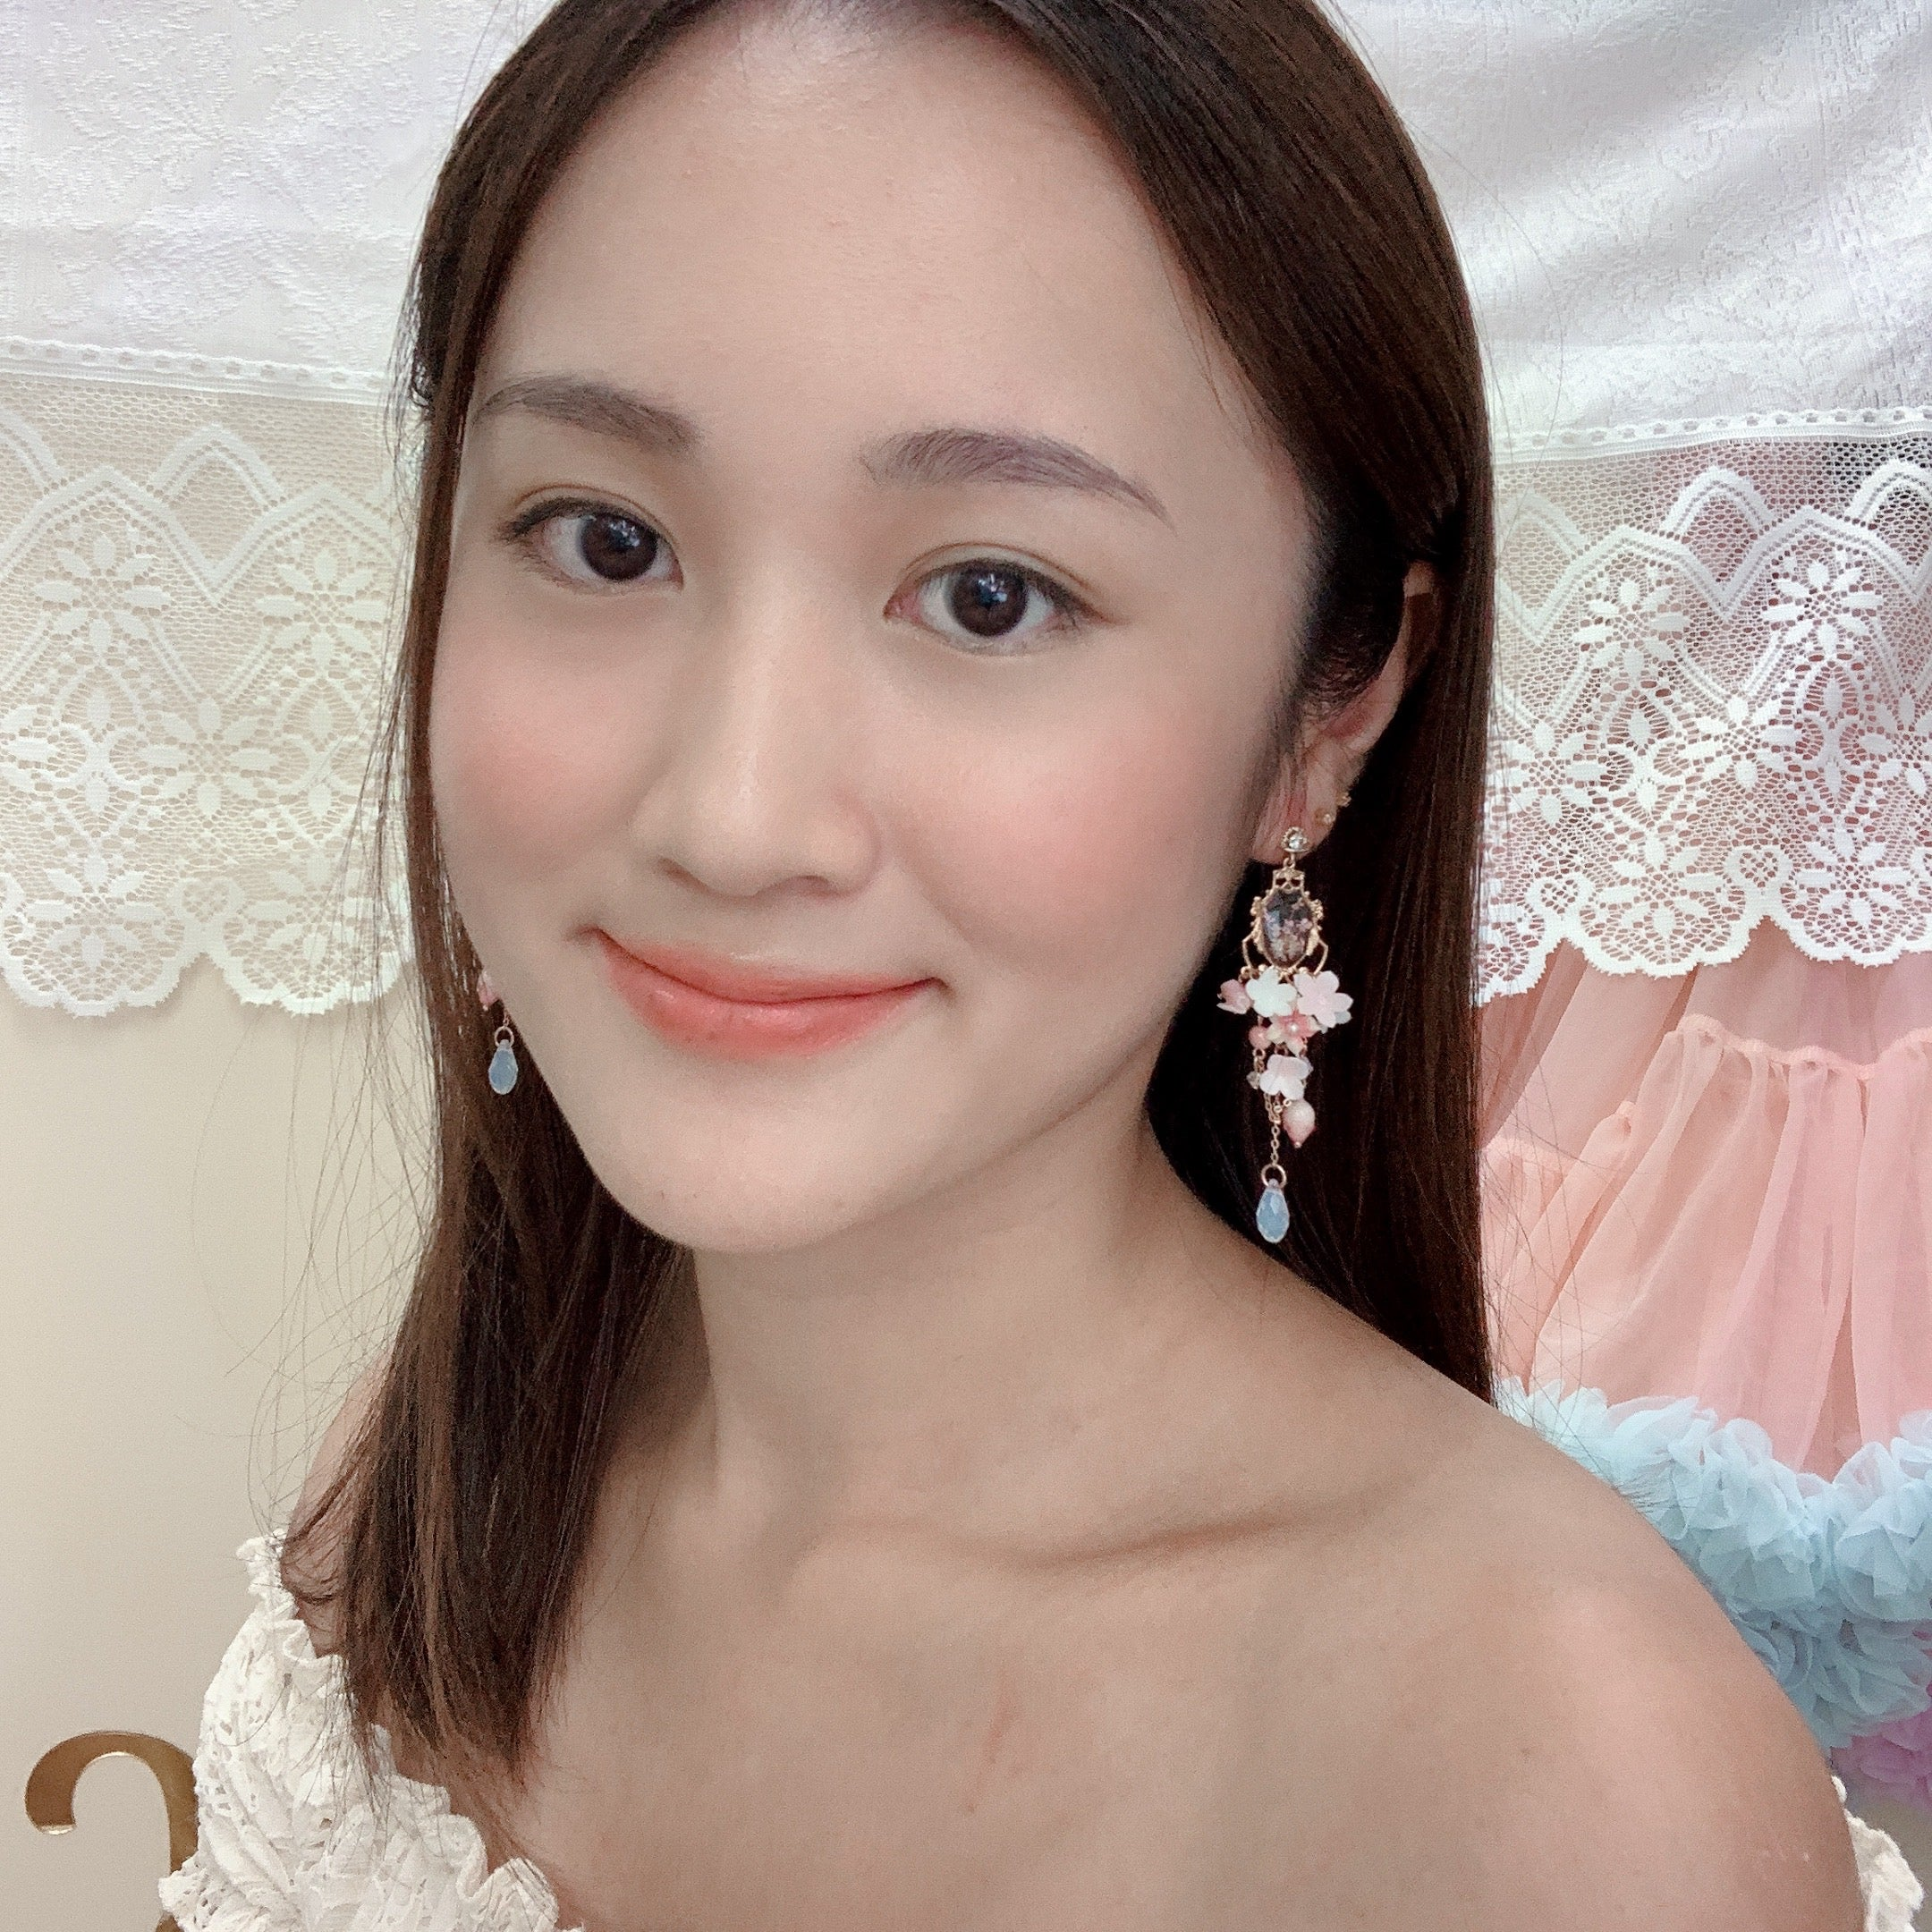 ⑧ Dry Flower Chandelier Earrings (9 Designs)